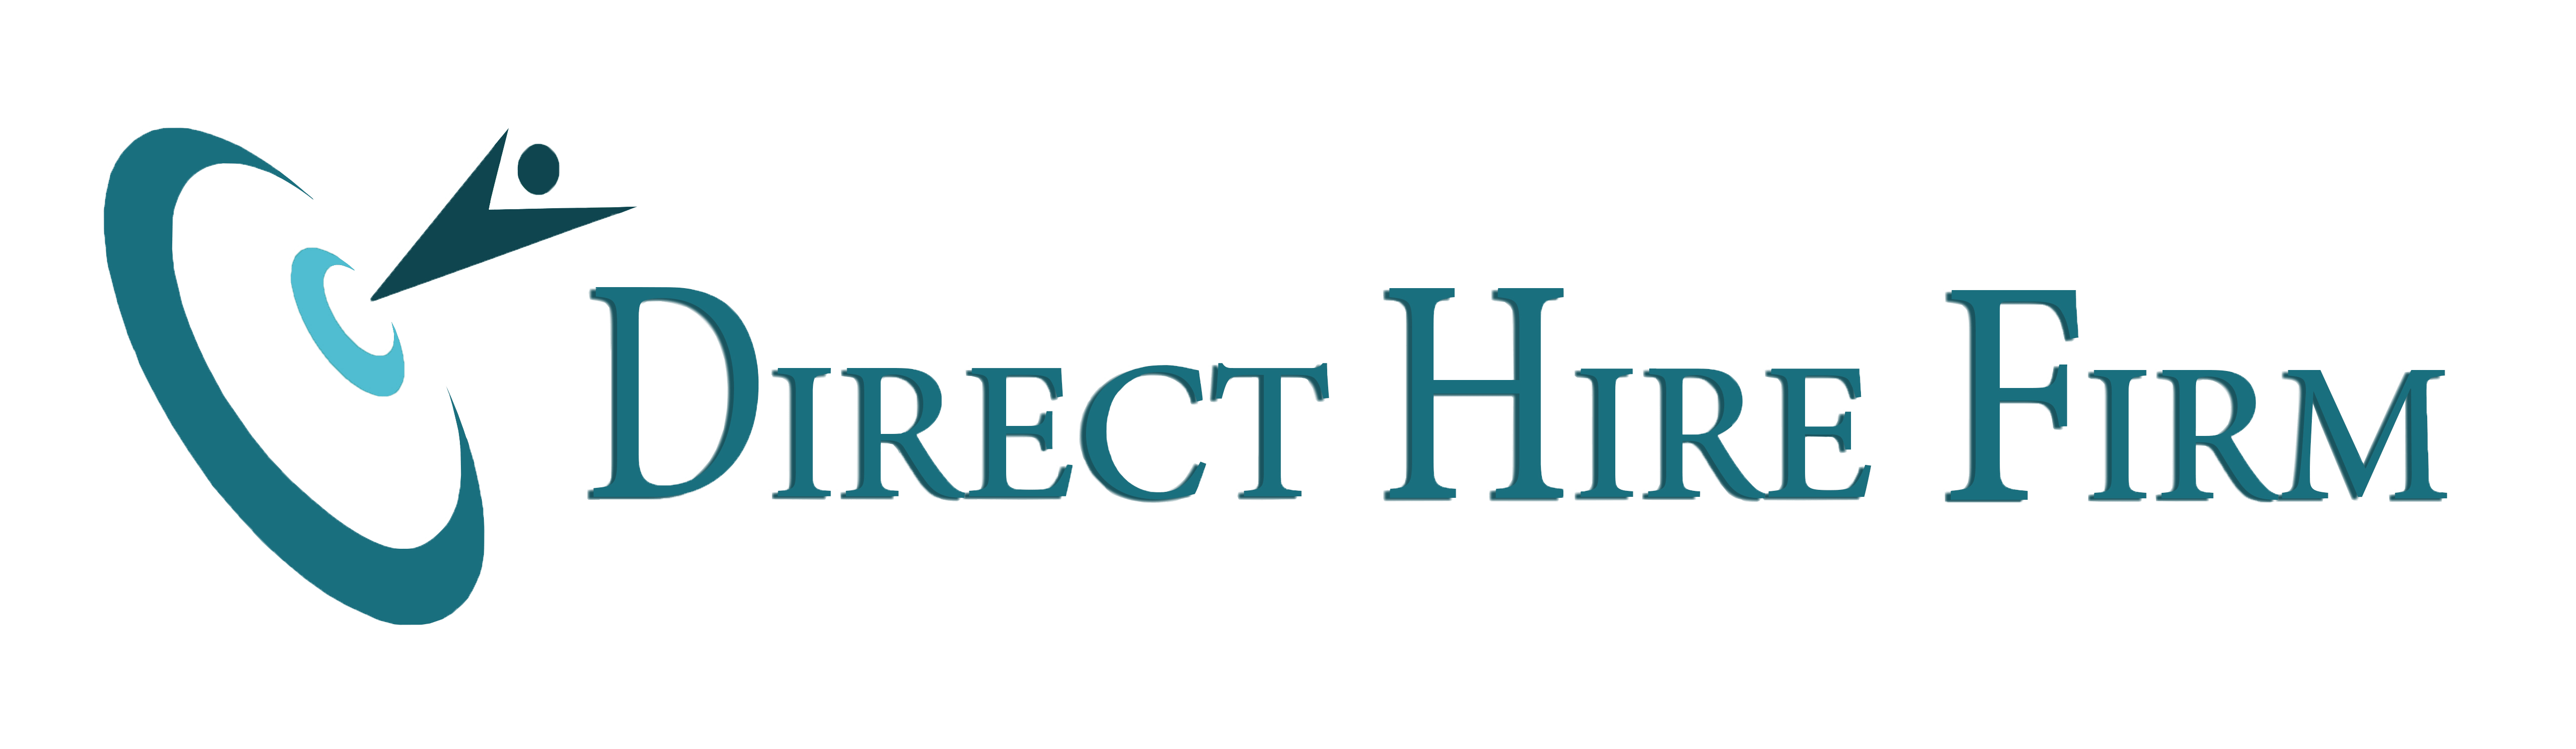 Direct Hire Firm